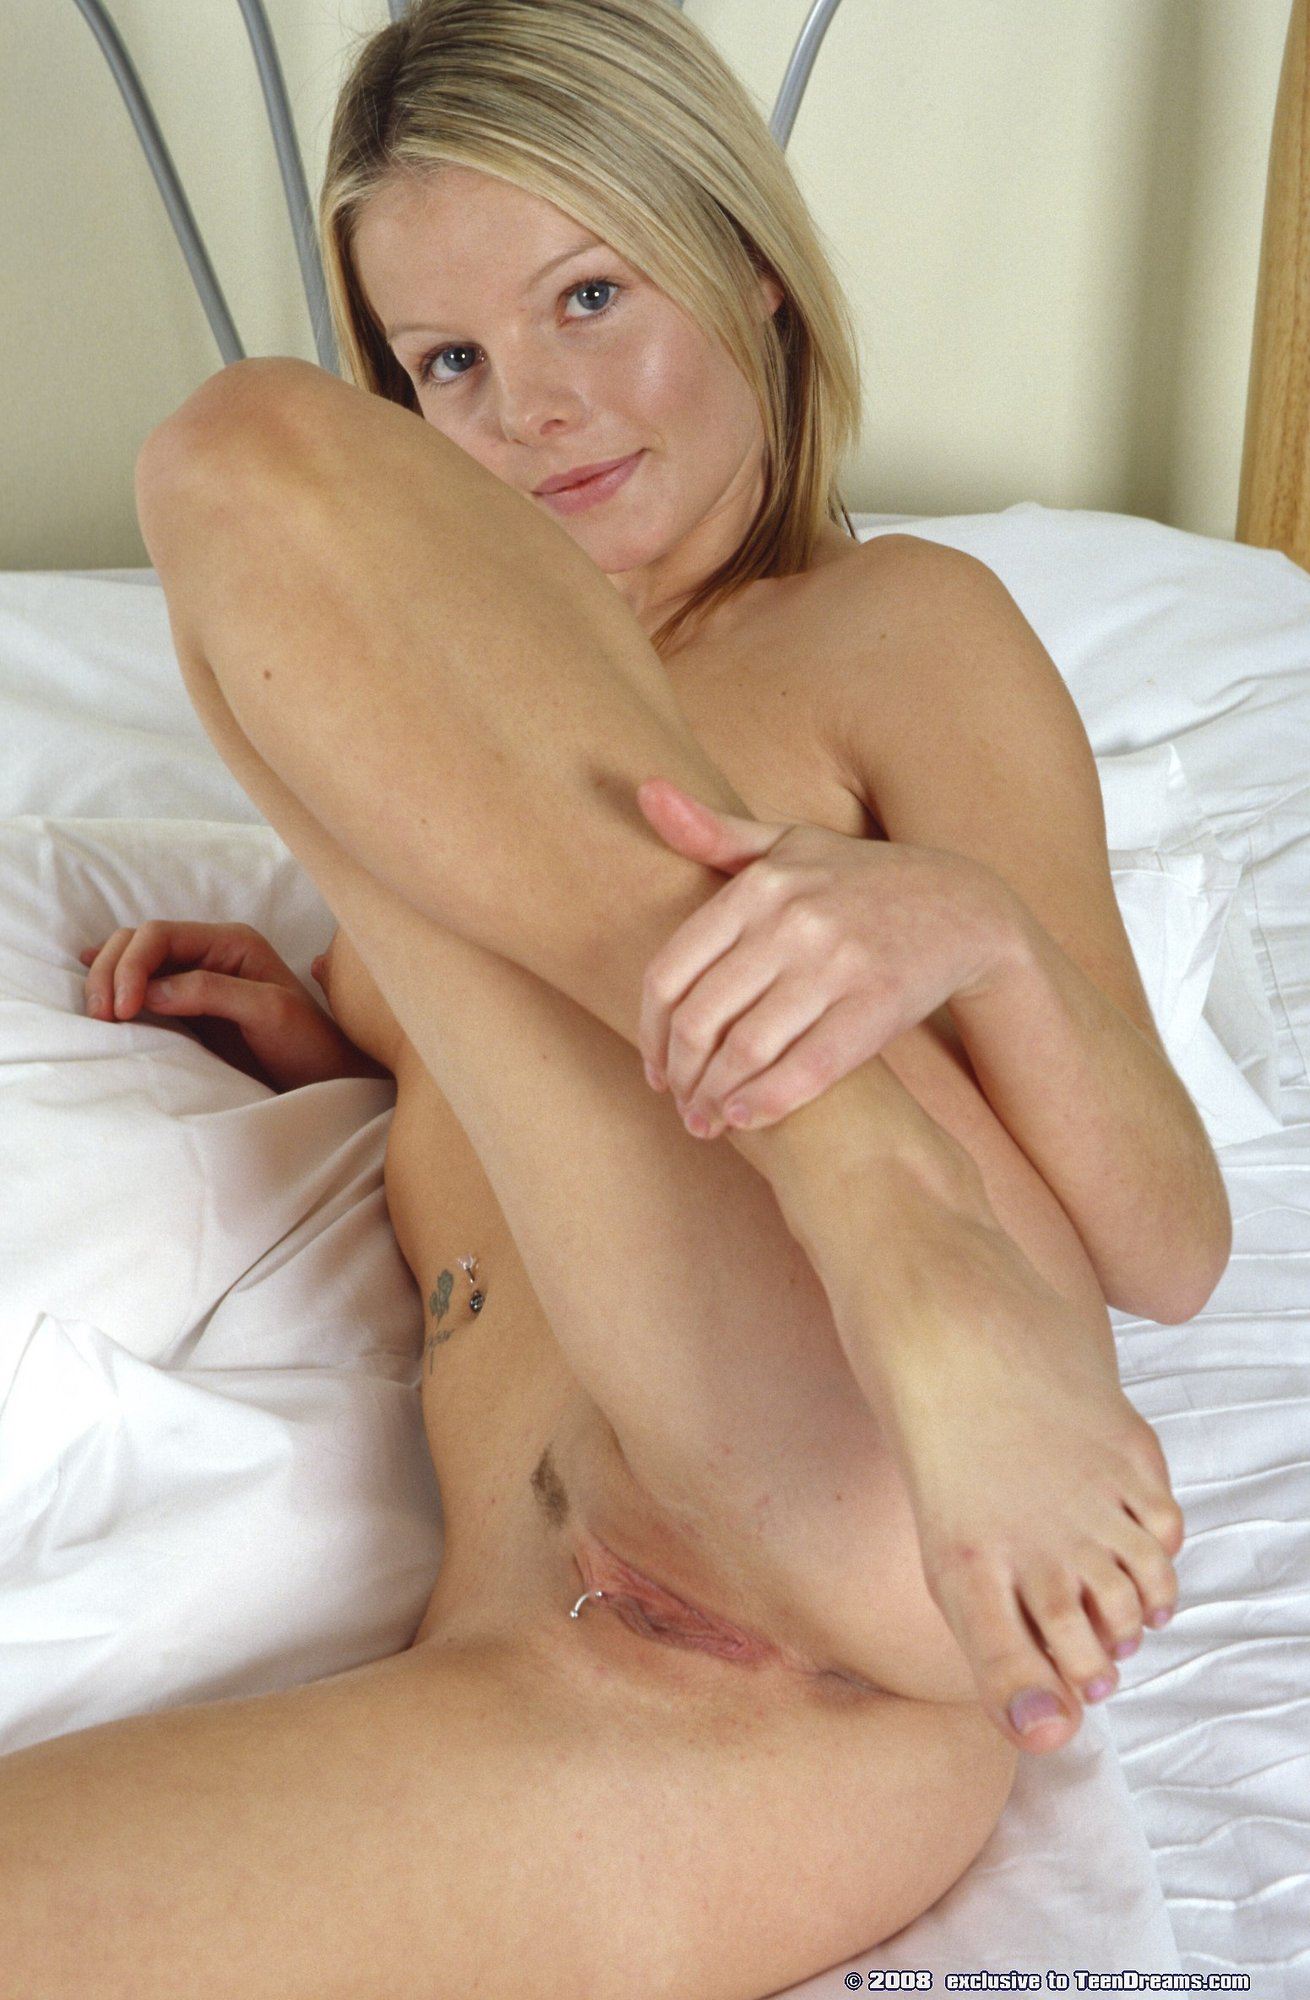 Pierced hot pussy all